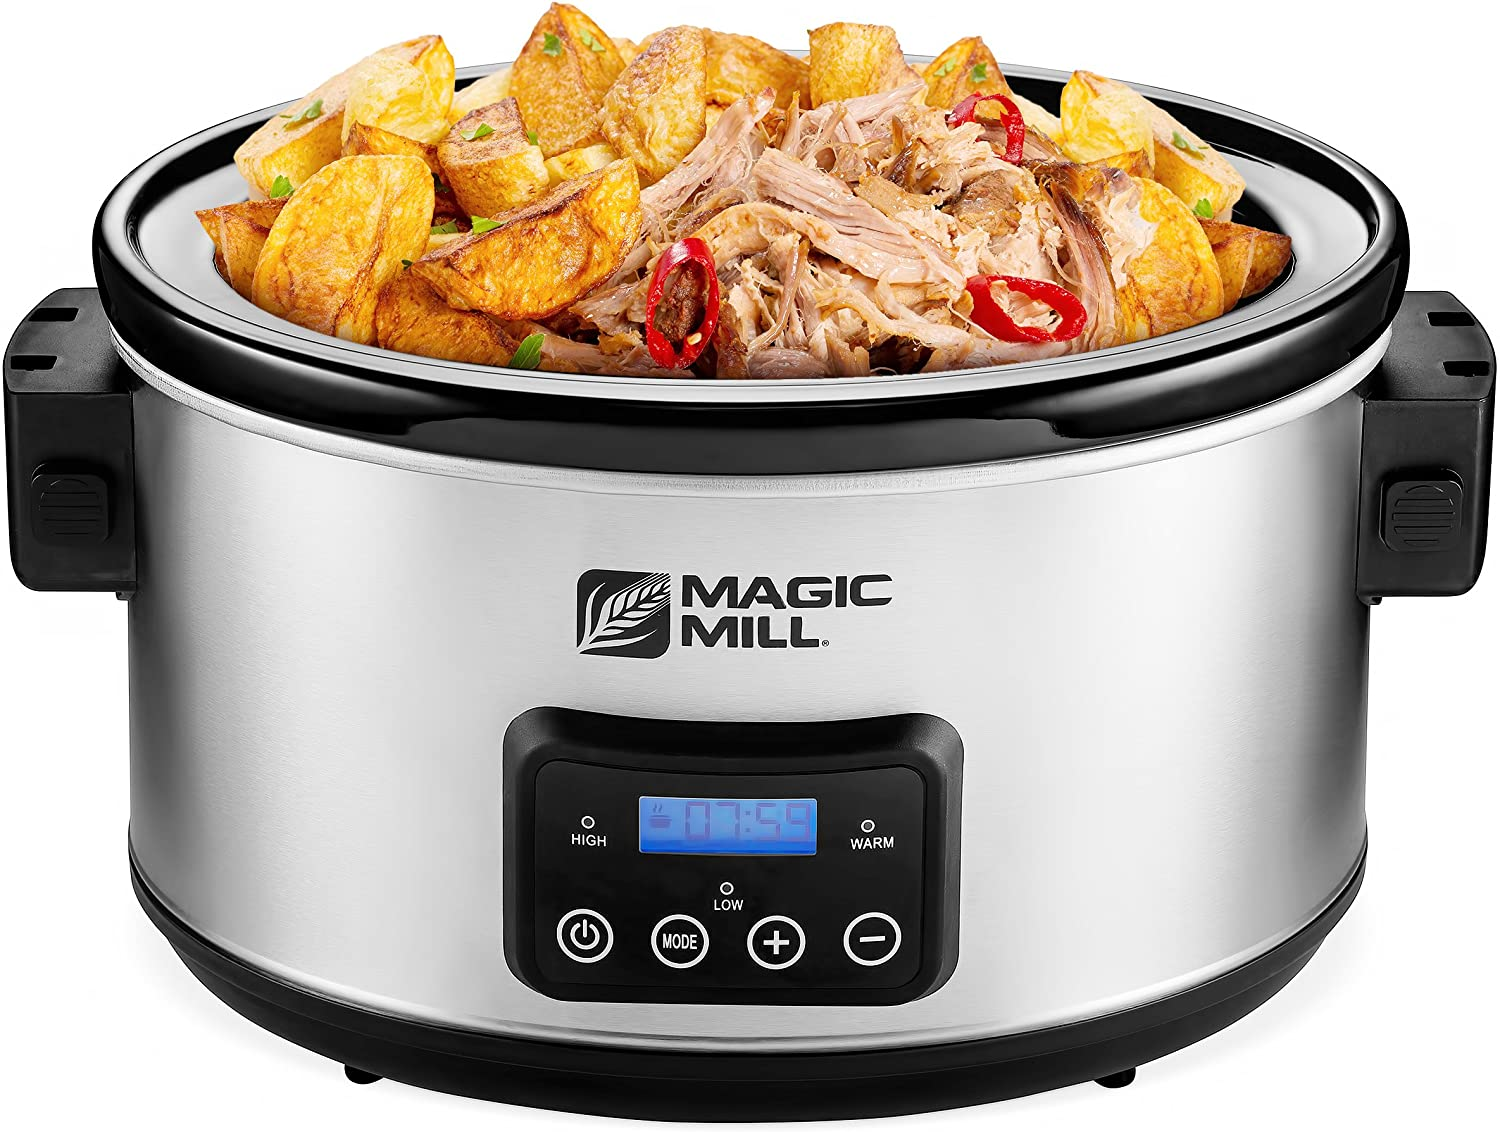 Magic Mill Portable electric slow cooker / Slow cooker with delay start